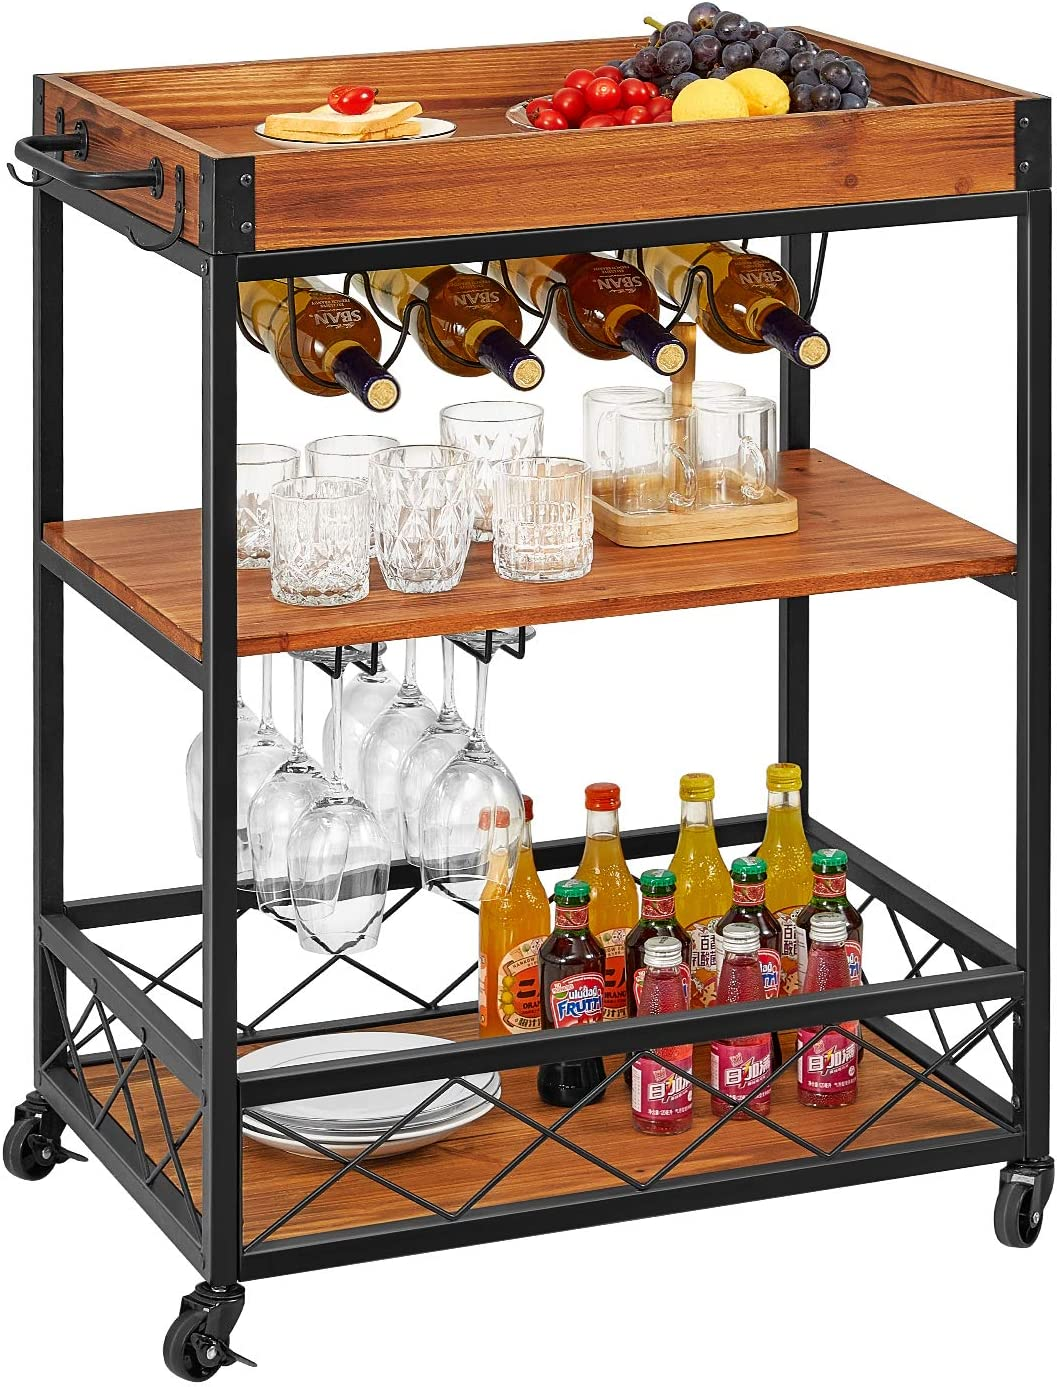 kealive Bar Cart for Home Mobile Metal Wood Wine Cart Rolling on Wheels with Handle Rack, Glass Holder, 4 Hooker Removable Wood Box Container, Rustic Bar Serving Cart, 26L x 18W x 35.4H